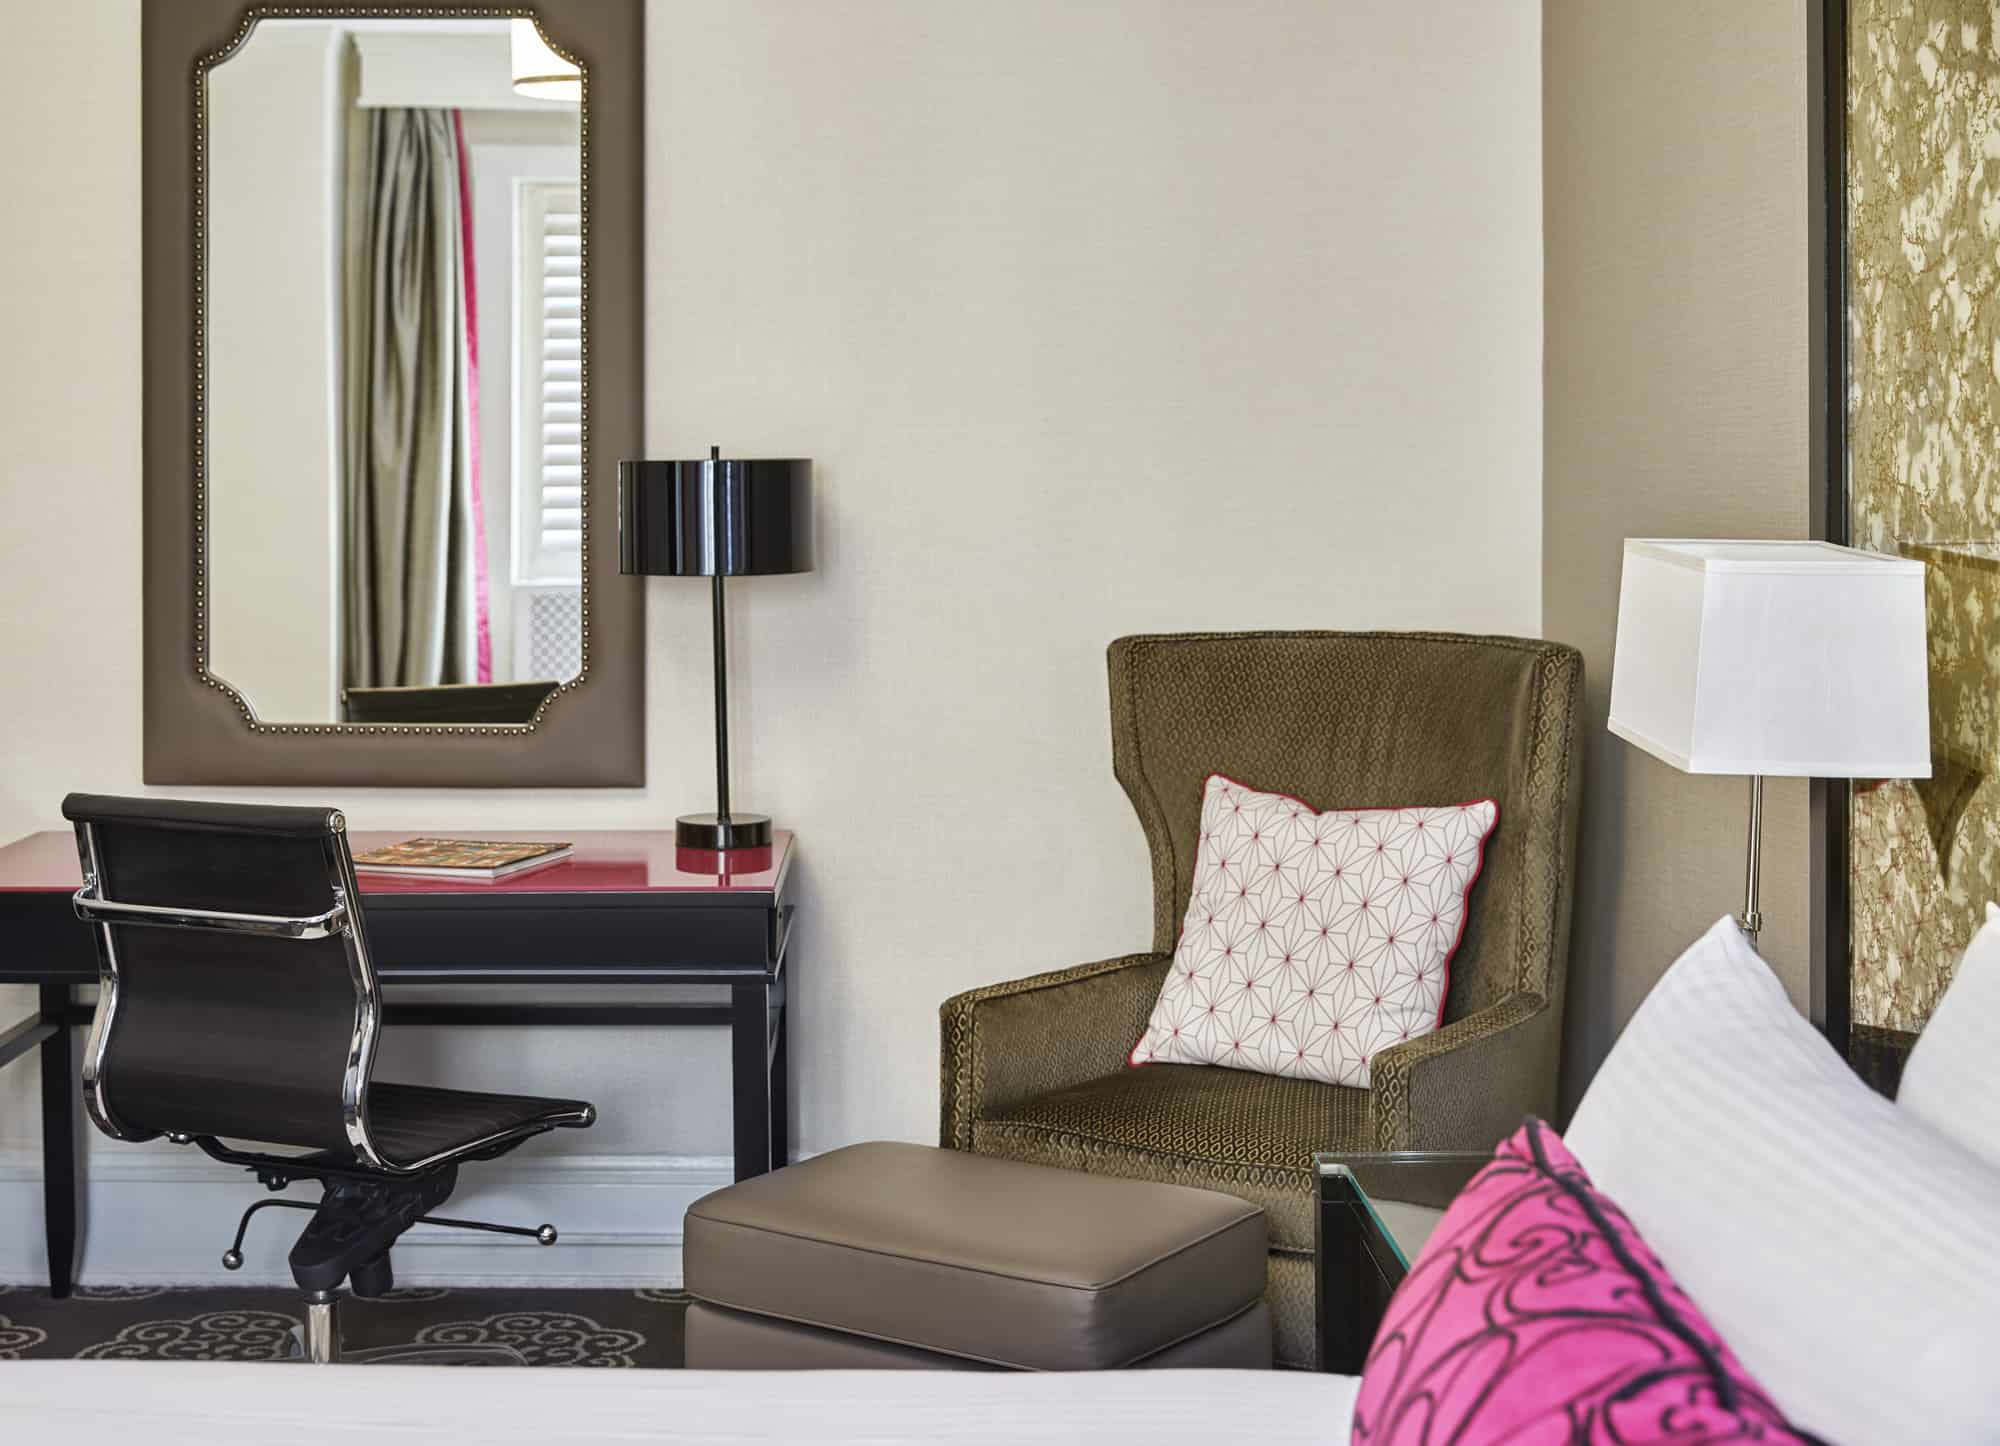 Guest room seating area detail.